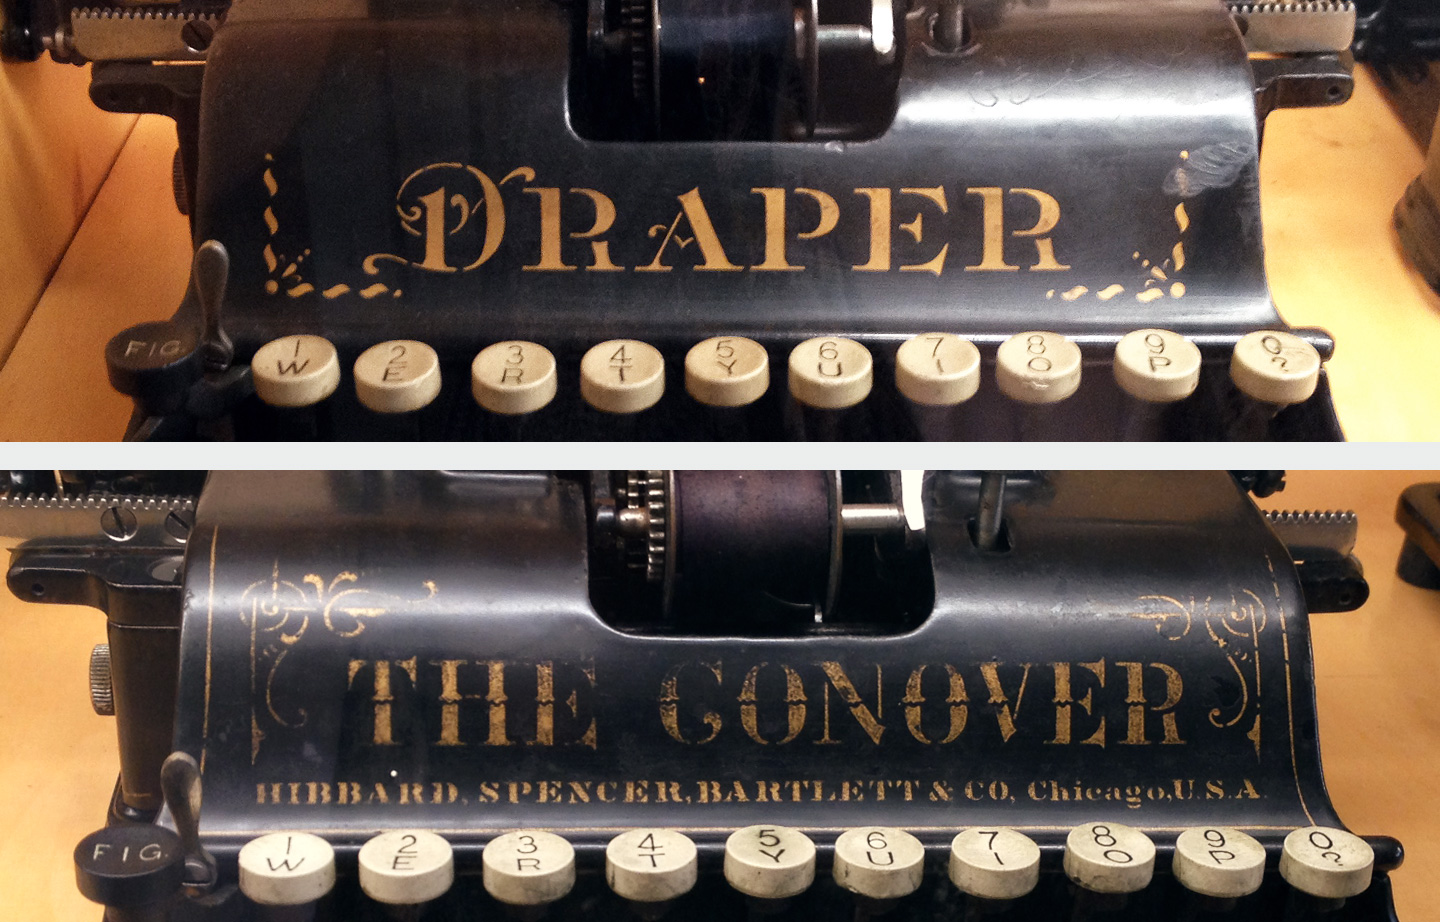 Samples of lettering work in two different typewriters